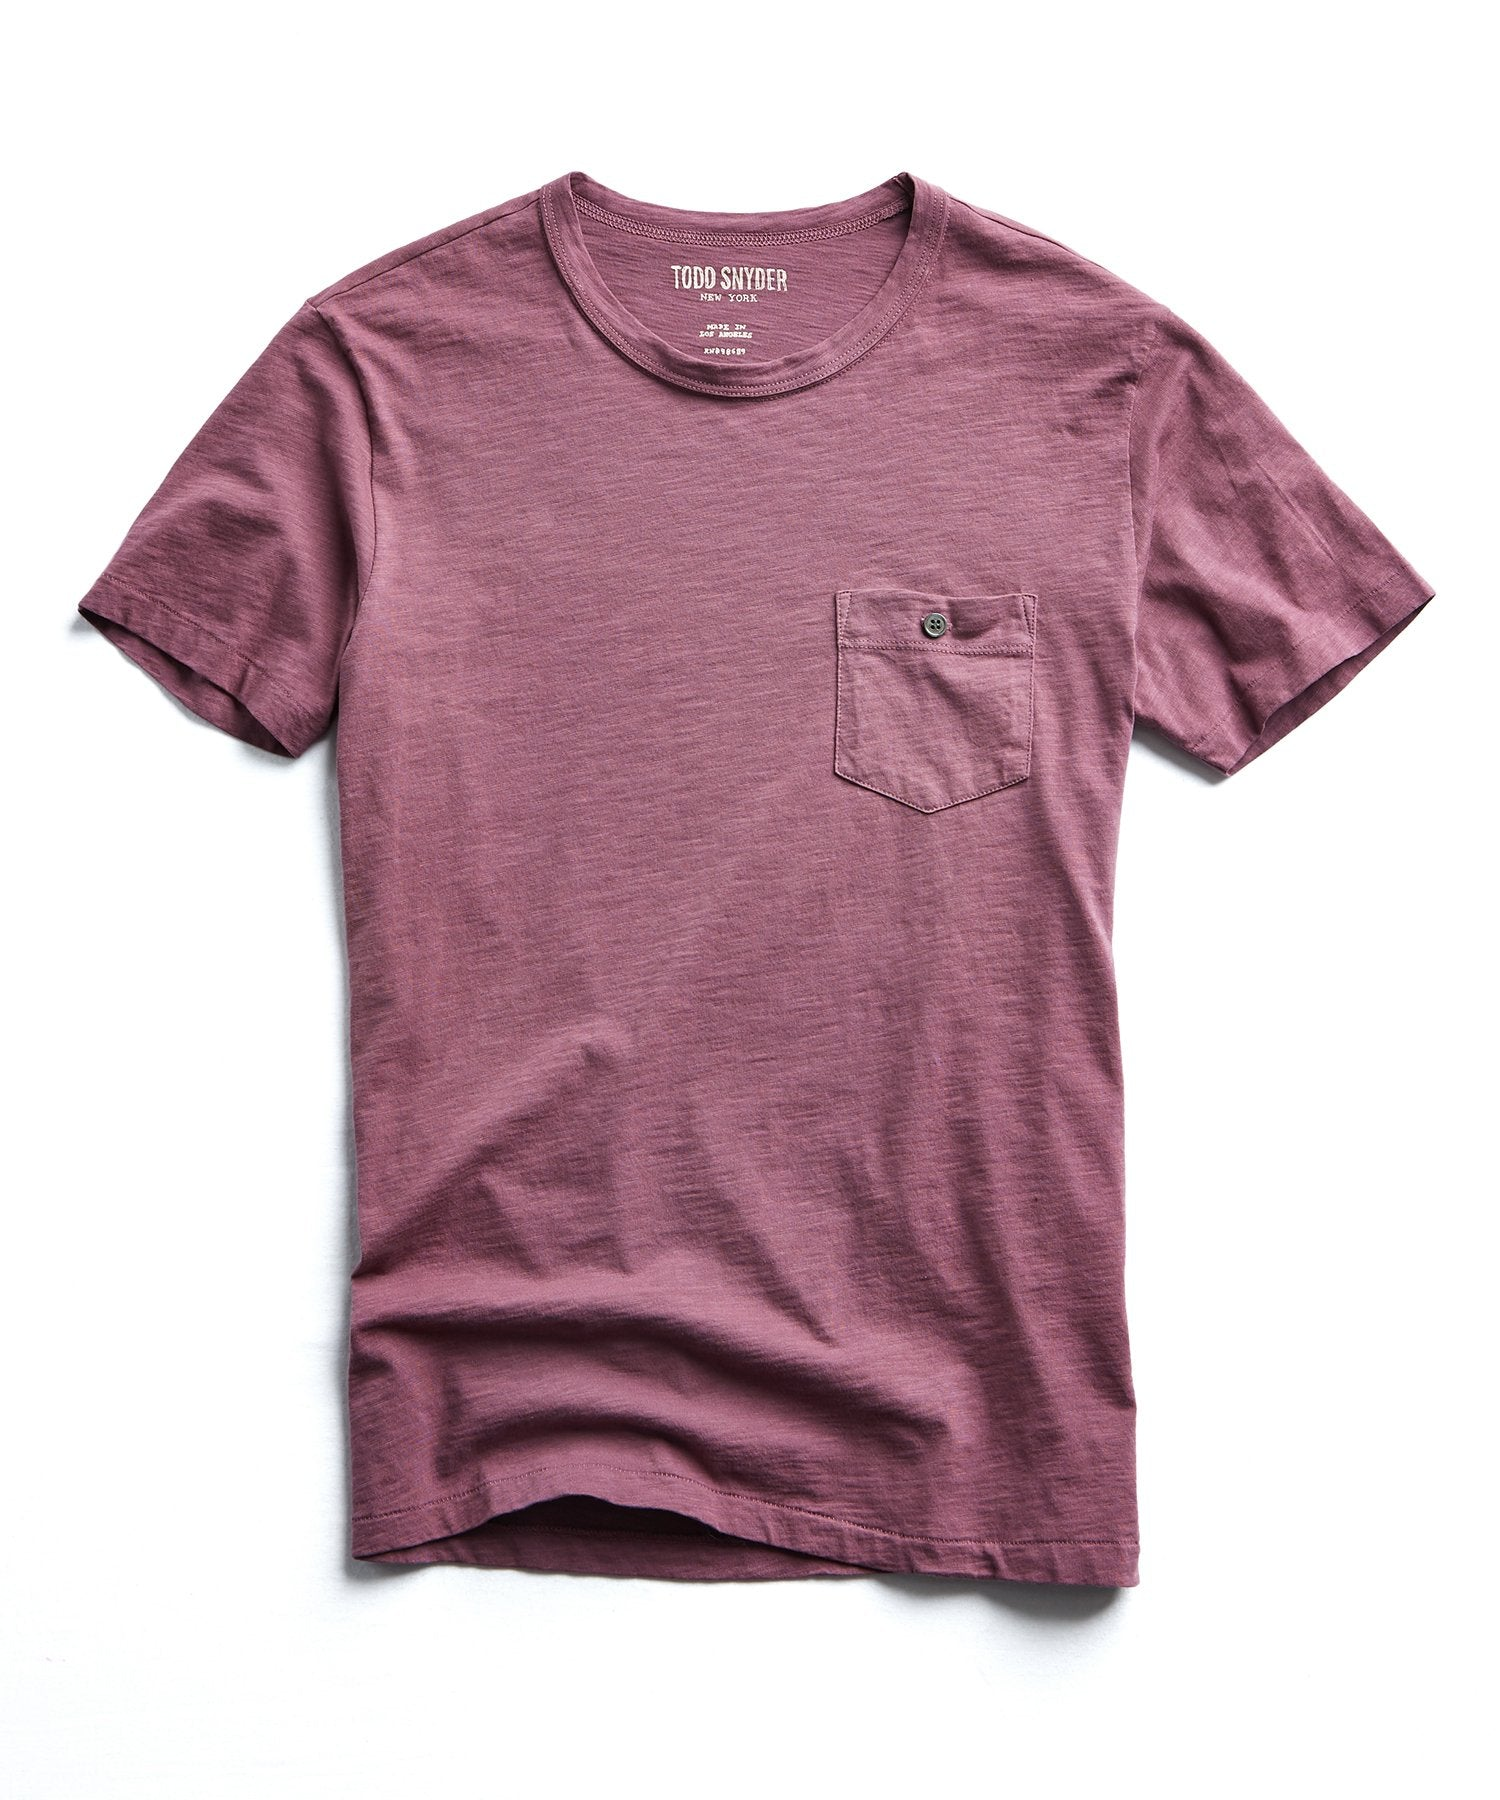 Made in L.A. Slub Jersey Pocket T-Shirt in Smokey Mauve